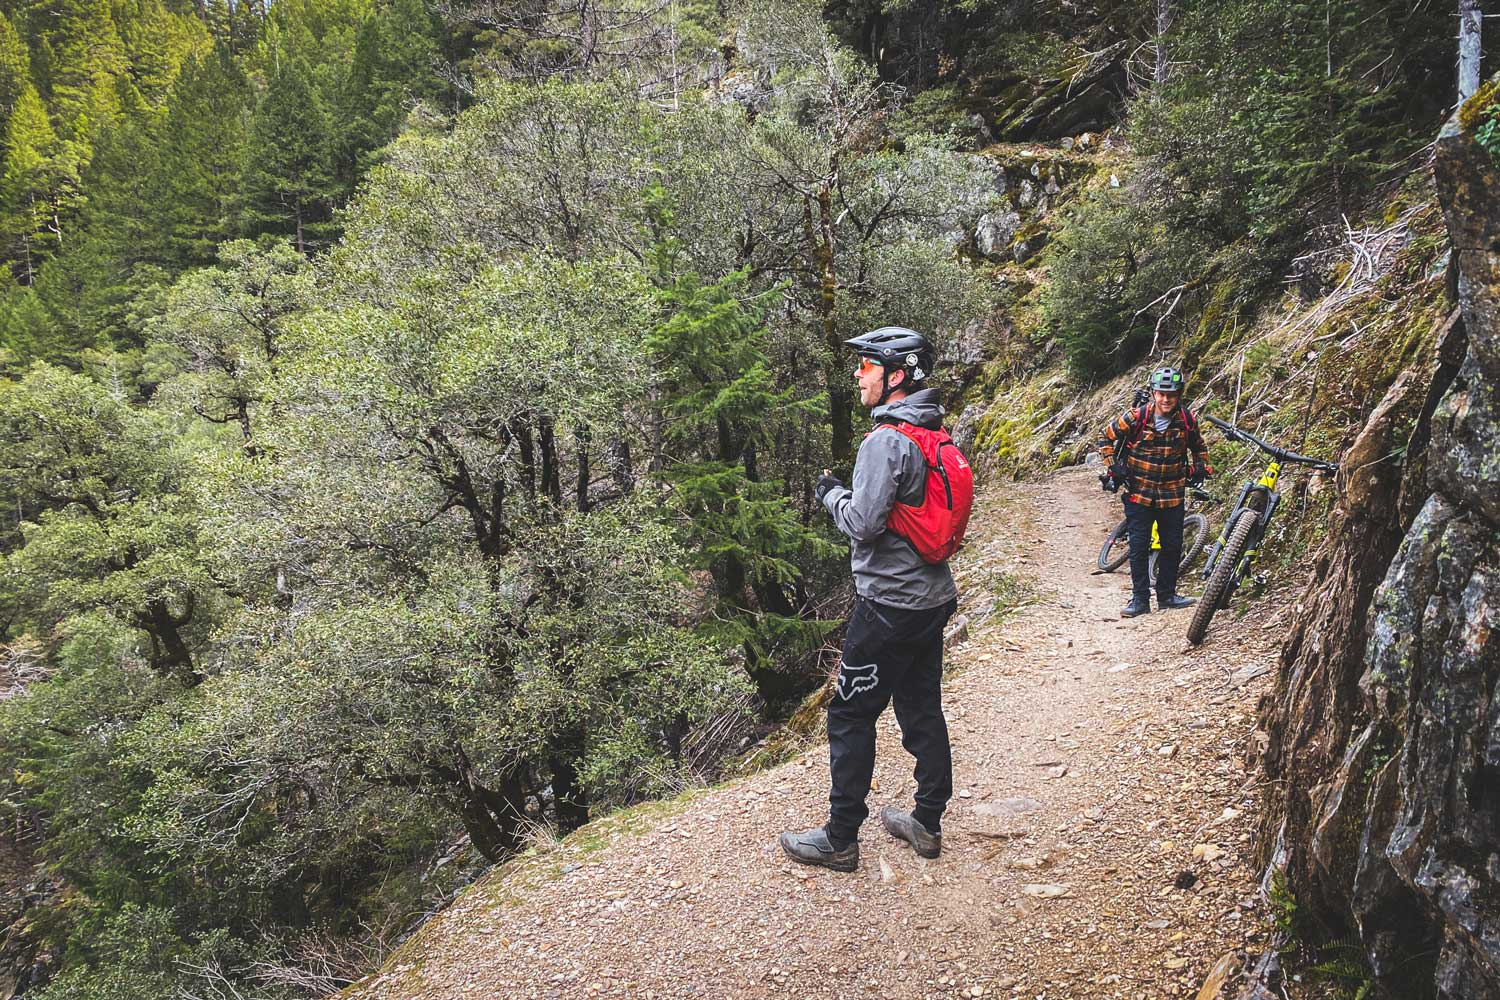 riders on trail with the Santa Cruz Heckler